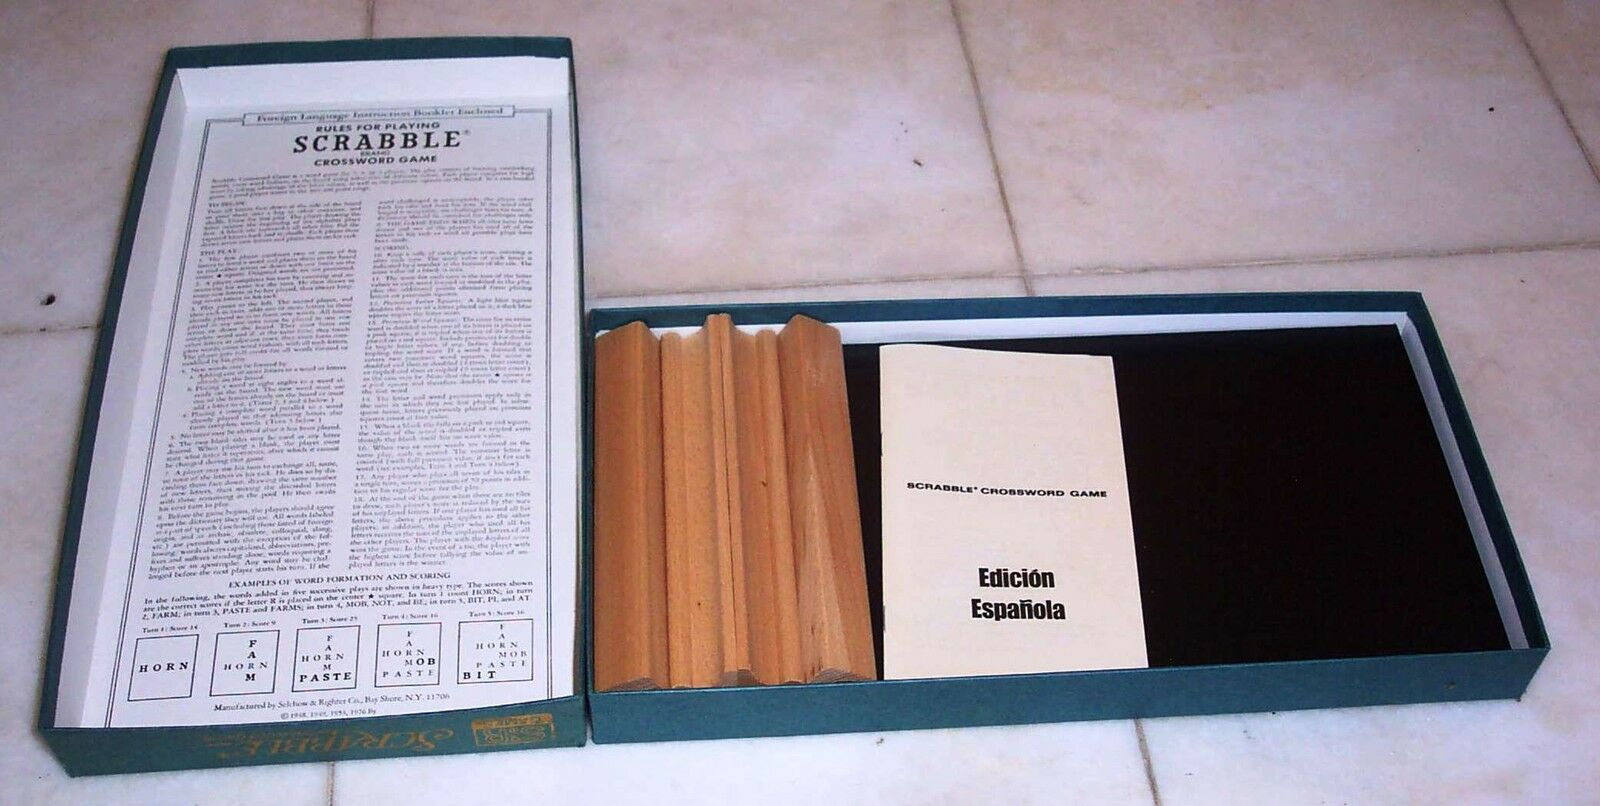 MINT  Vintage Foreign Edition SPANISH SCRABBLE GAME  Selchow & Righter 1976